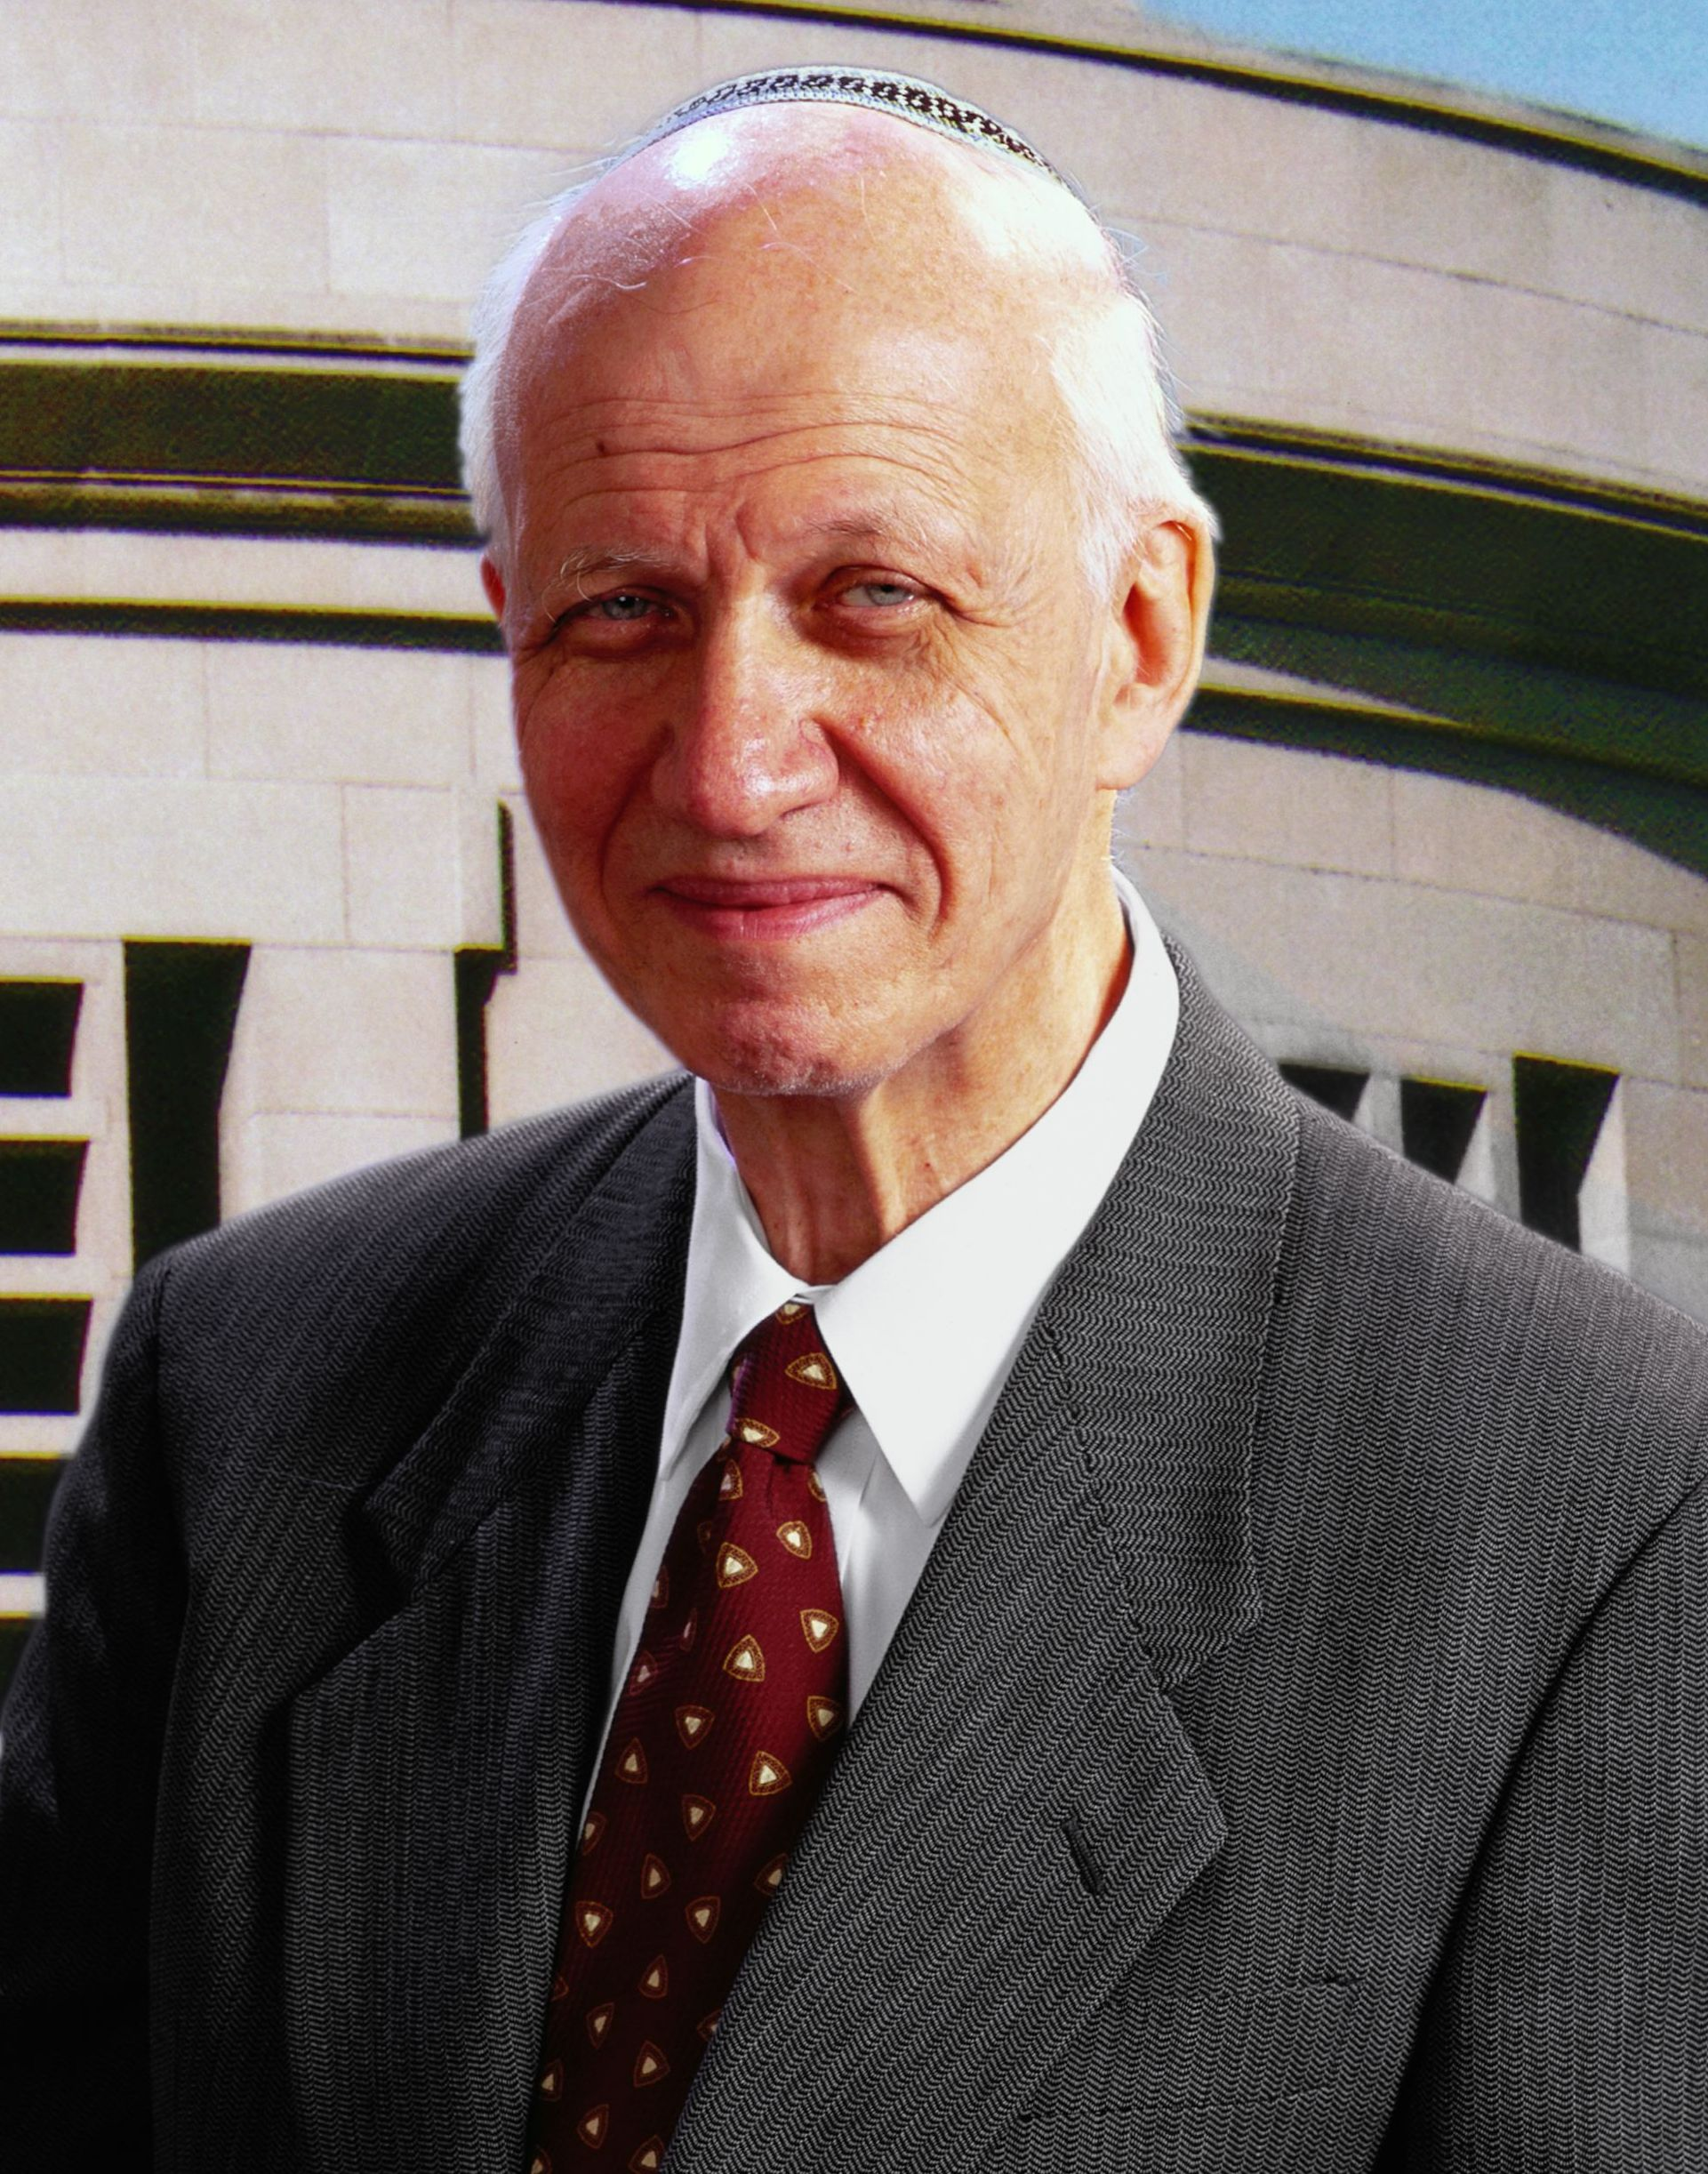 Rabbi Dr. Irving Greenberg